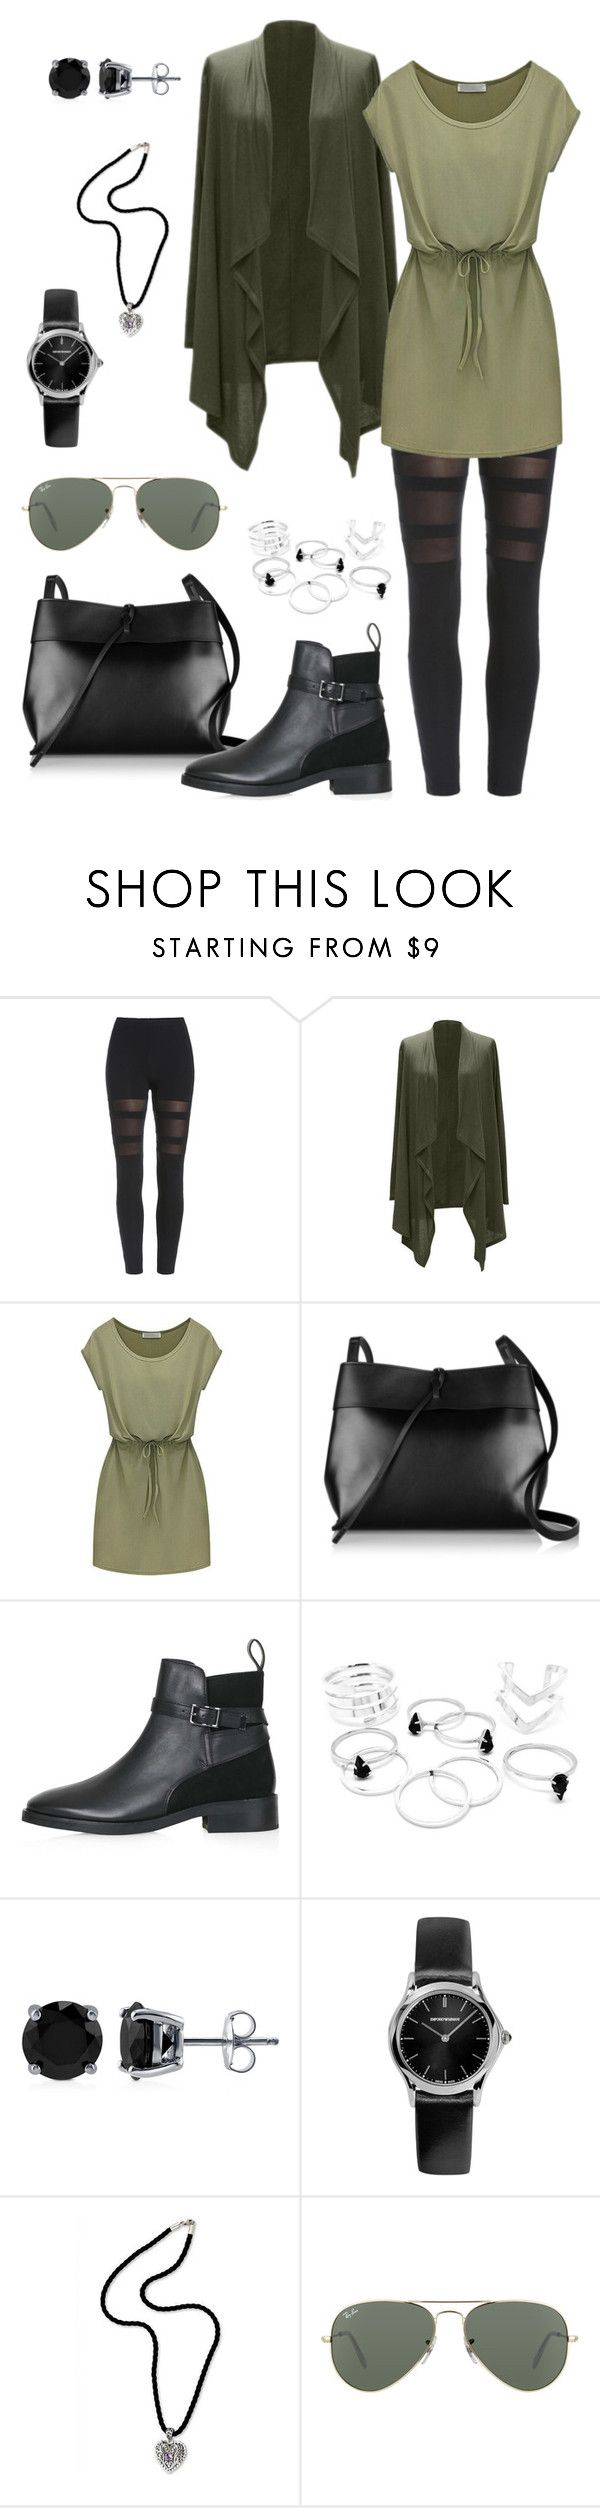 """Romwe black leggins"" by zana-k ❤ liked on Polyvore featuring RIFLE, Kara, Topshop, BERRICLE, Emporio Armani, NOVICA and Ray-Ban"